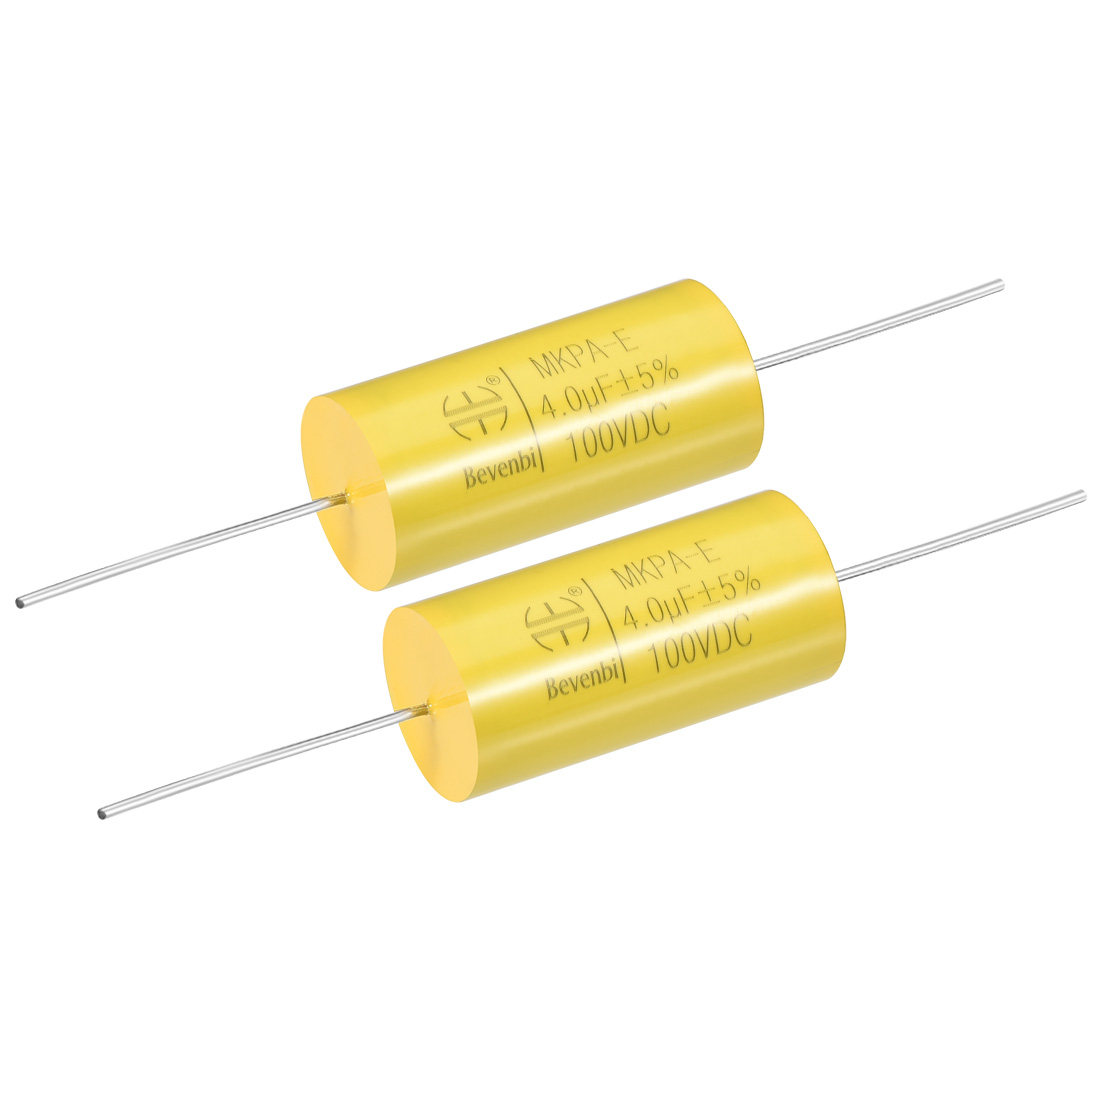 Film Capacitor 100V DC 4.0uF MKPA-E Round Polypropylene Capacitors Yellow 2pcs